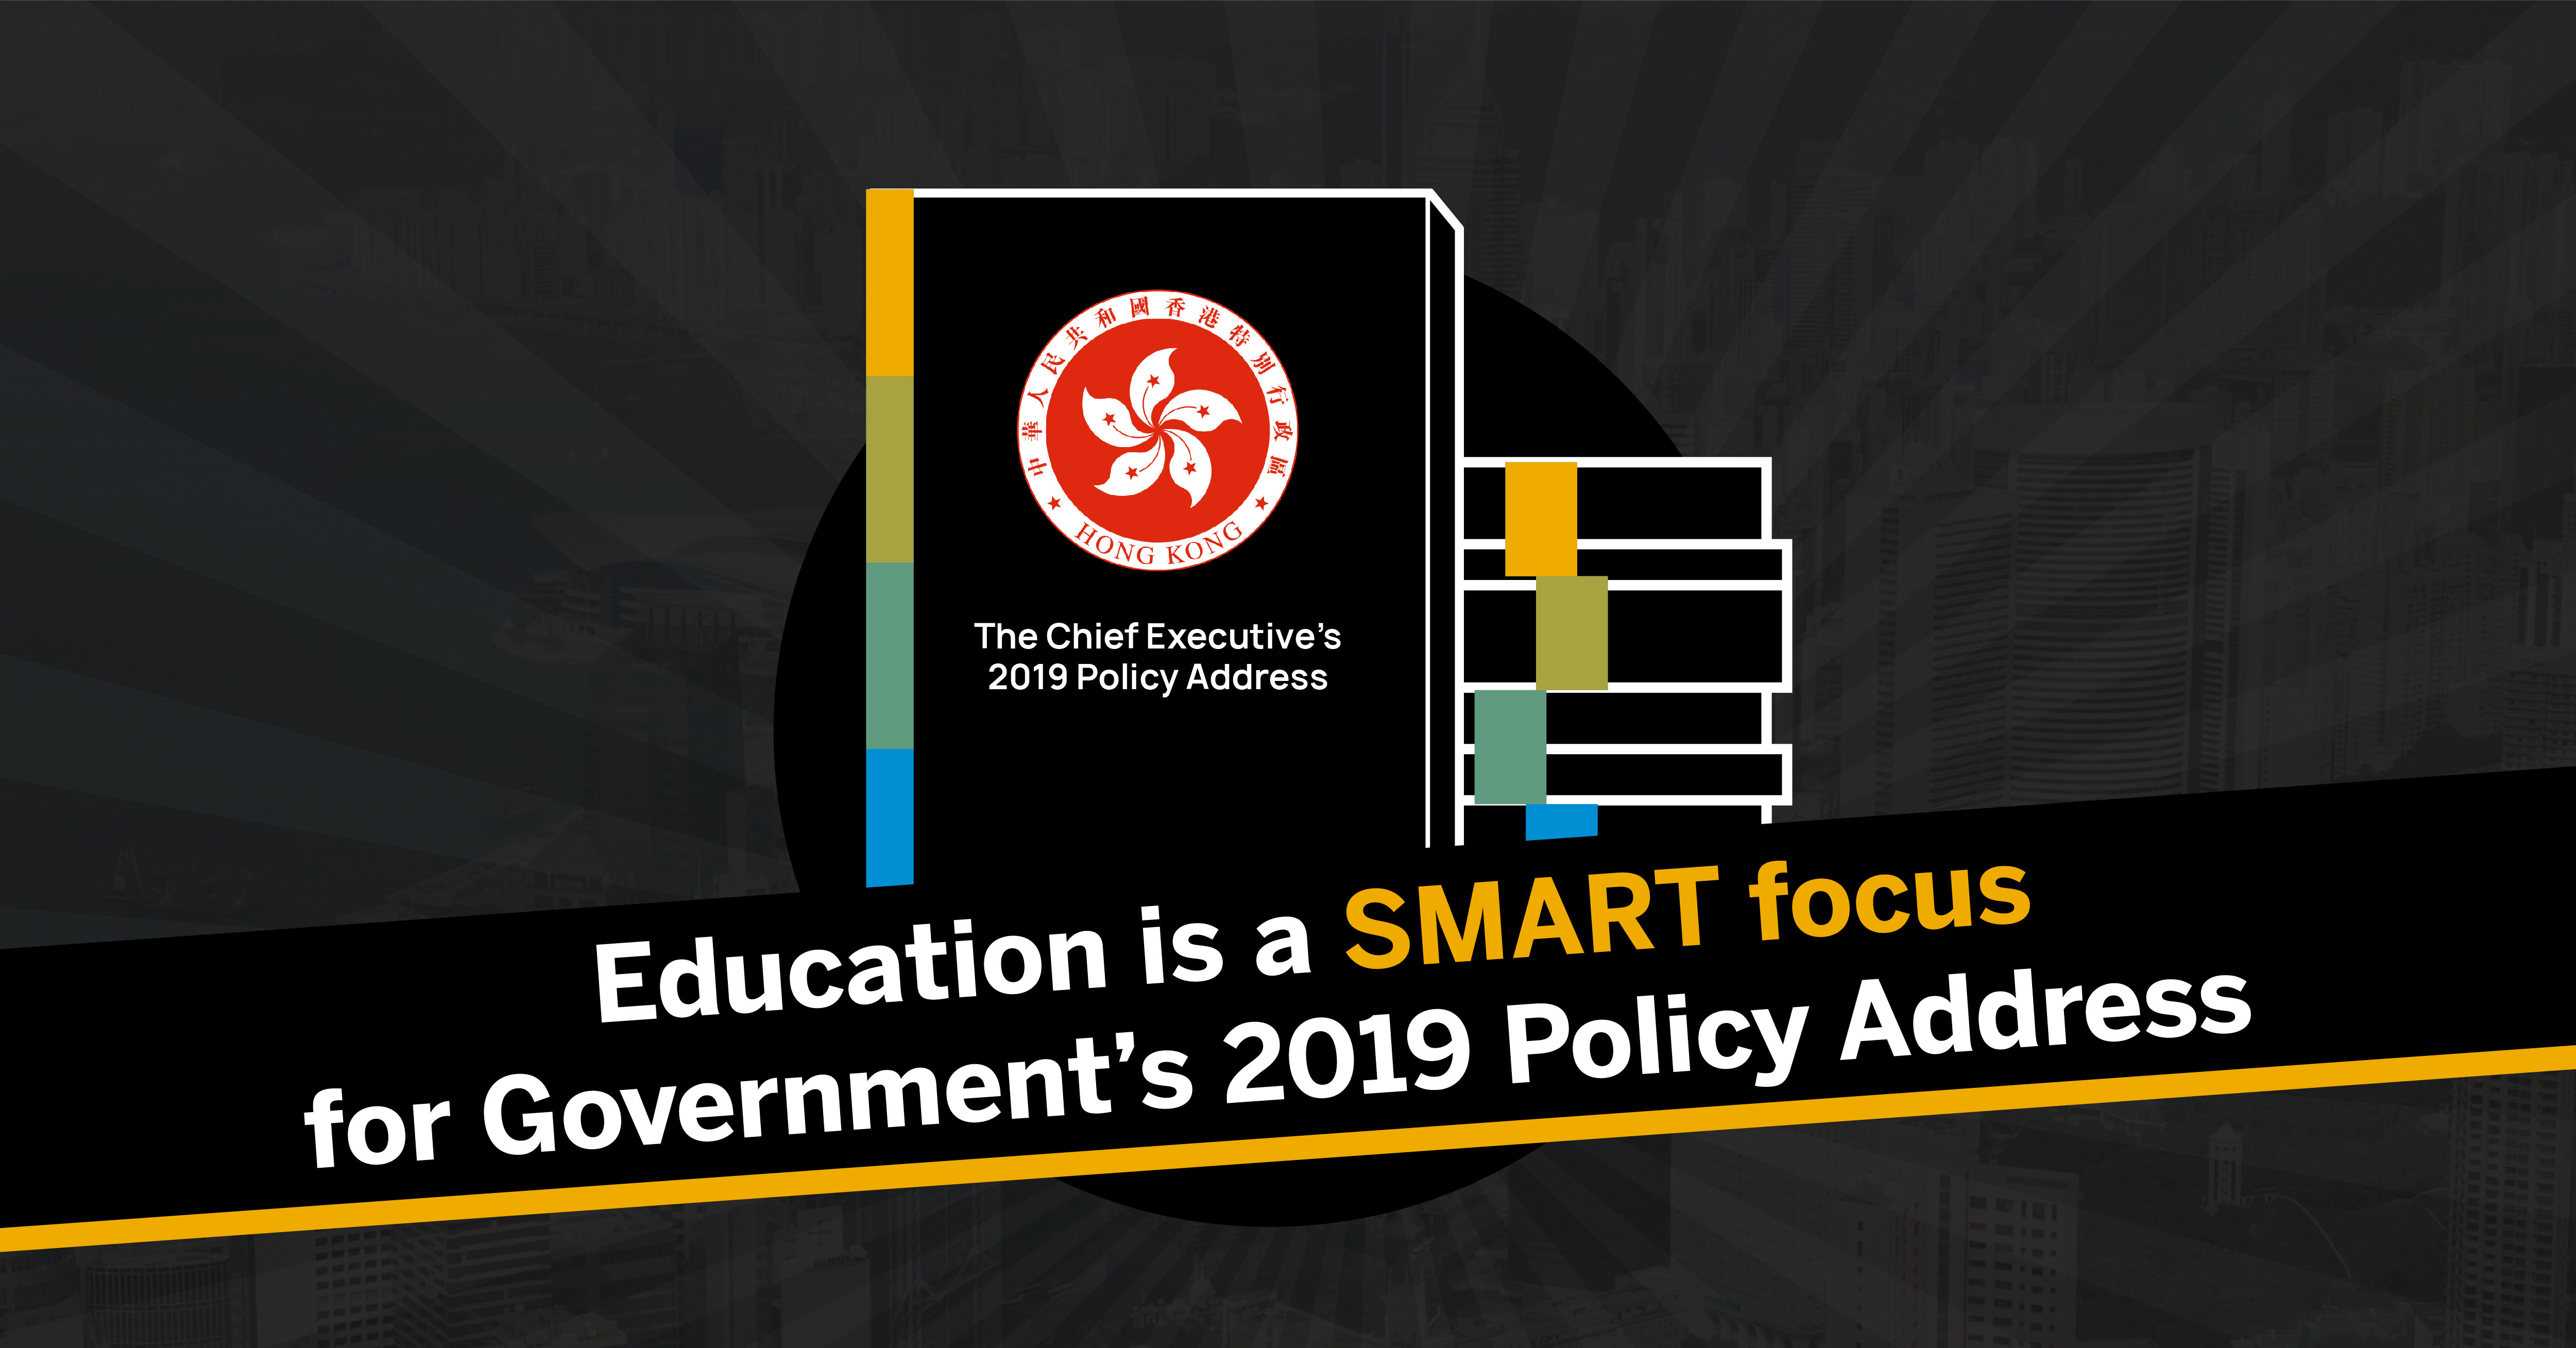 Education Is A SMART Focus For Government's 2019 Policy Address